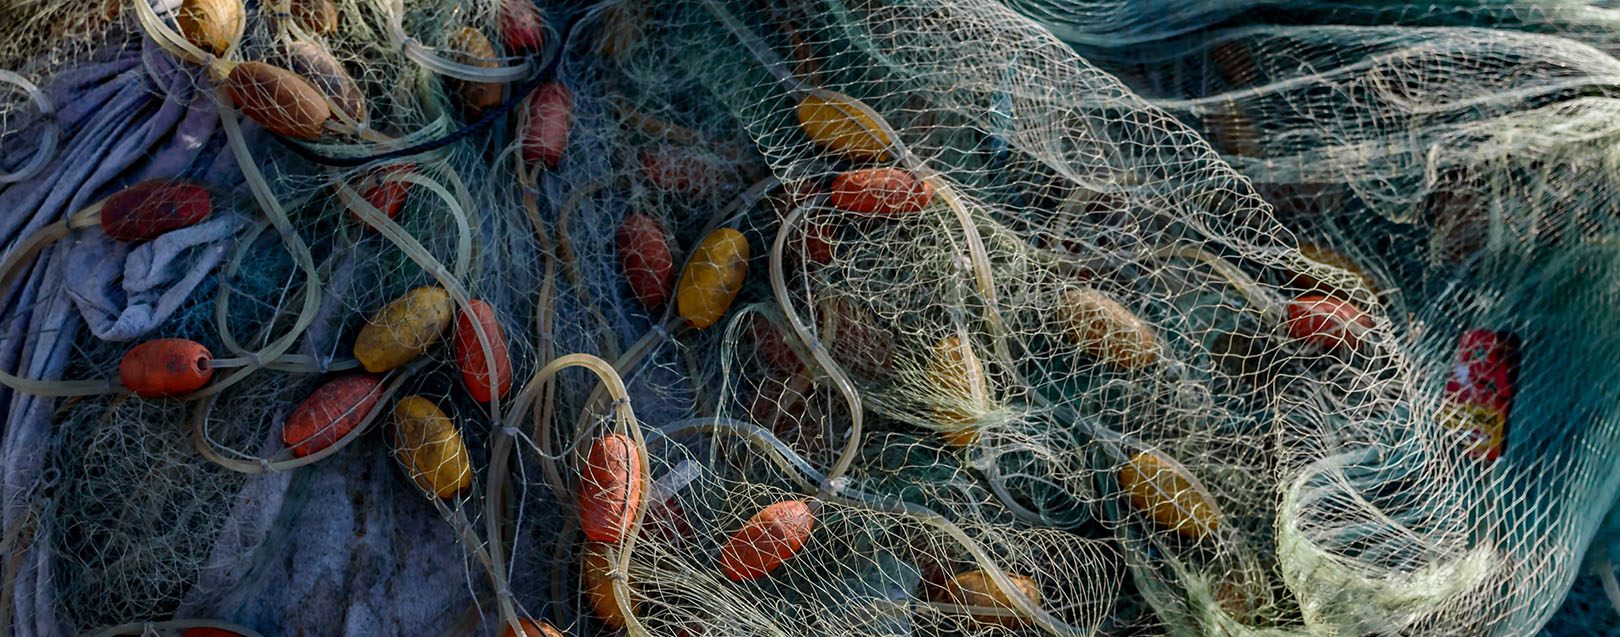 Industry seeks anti-dumping duty on fishnets imports